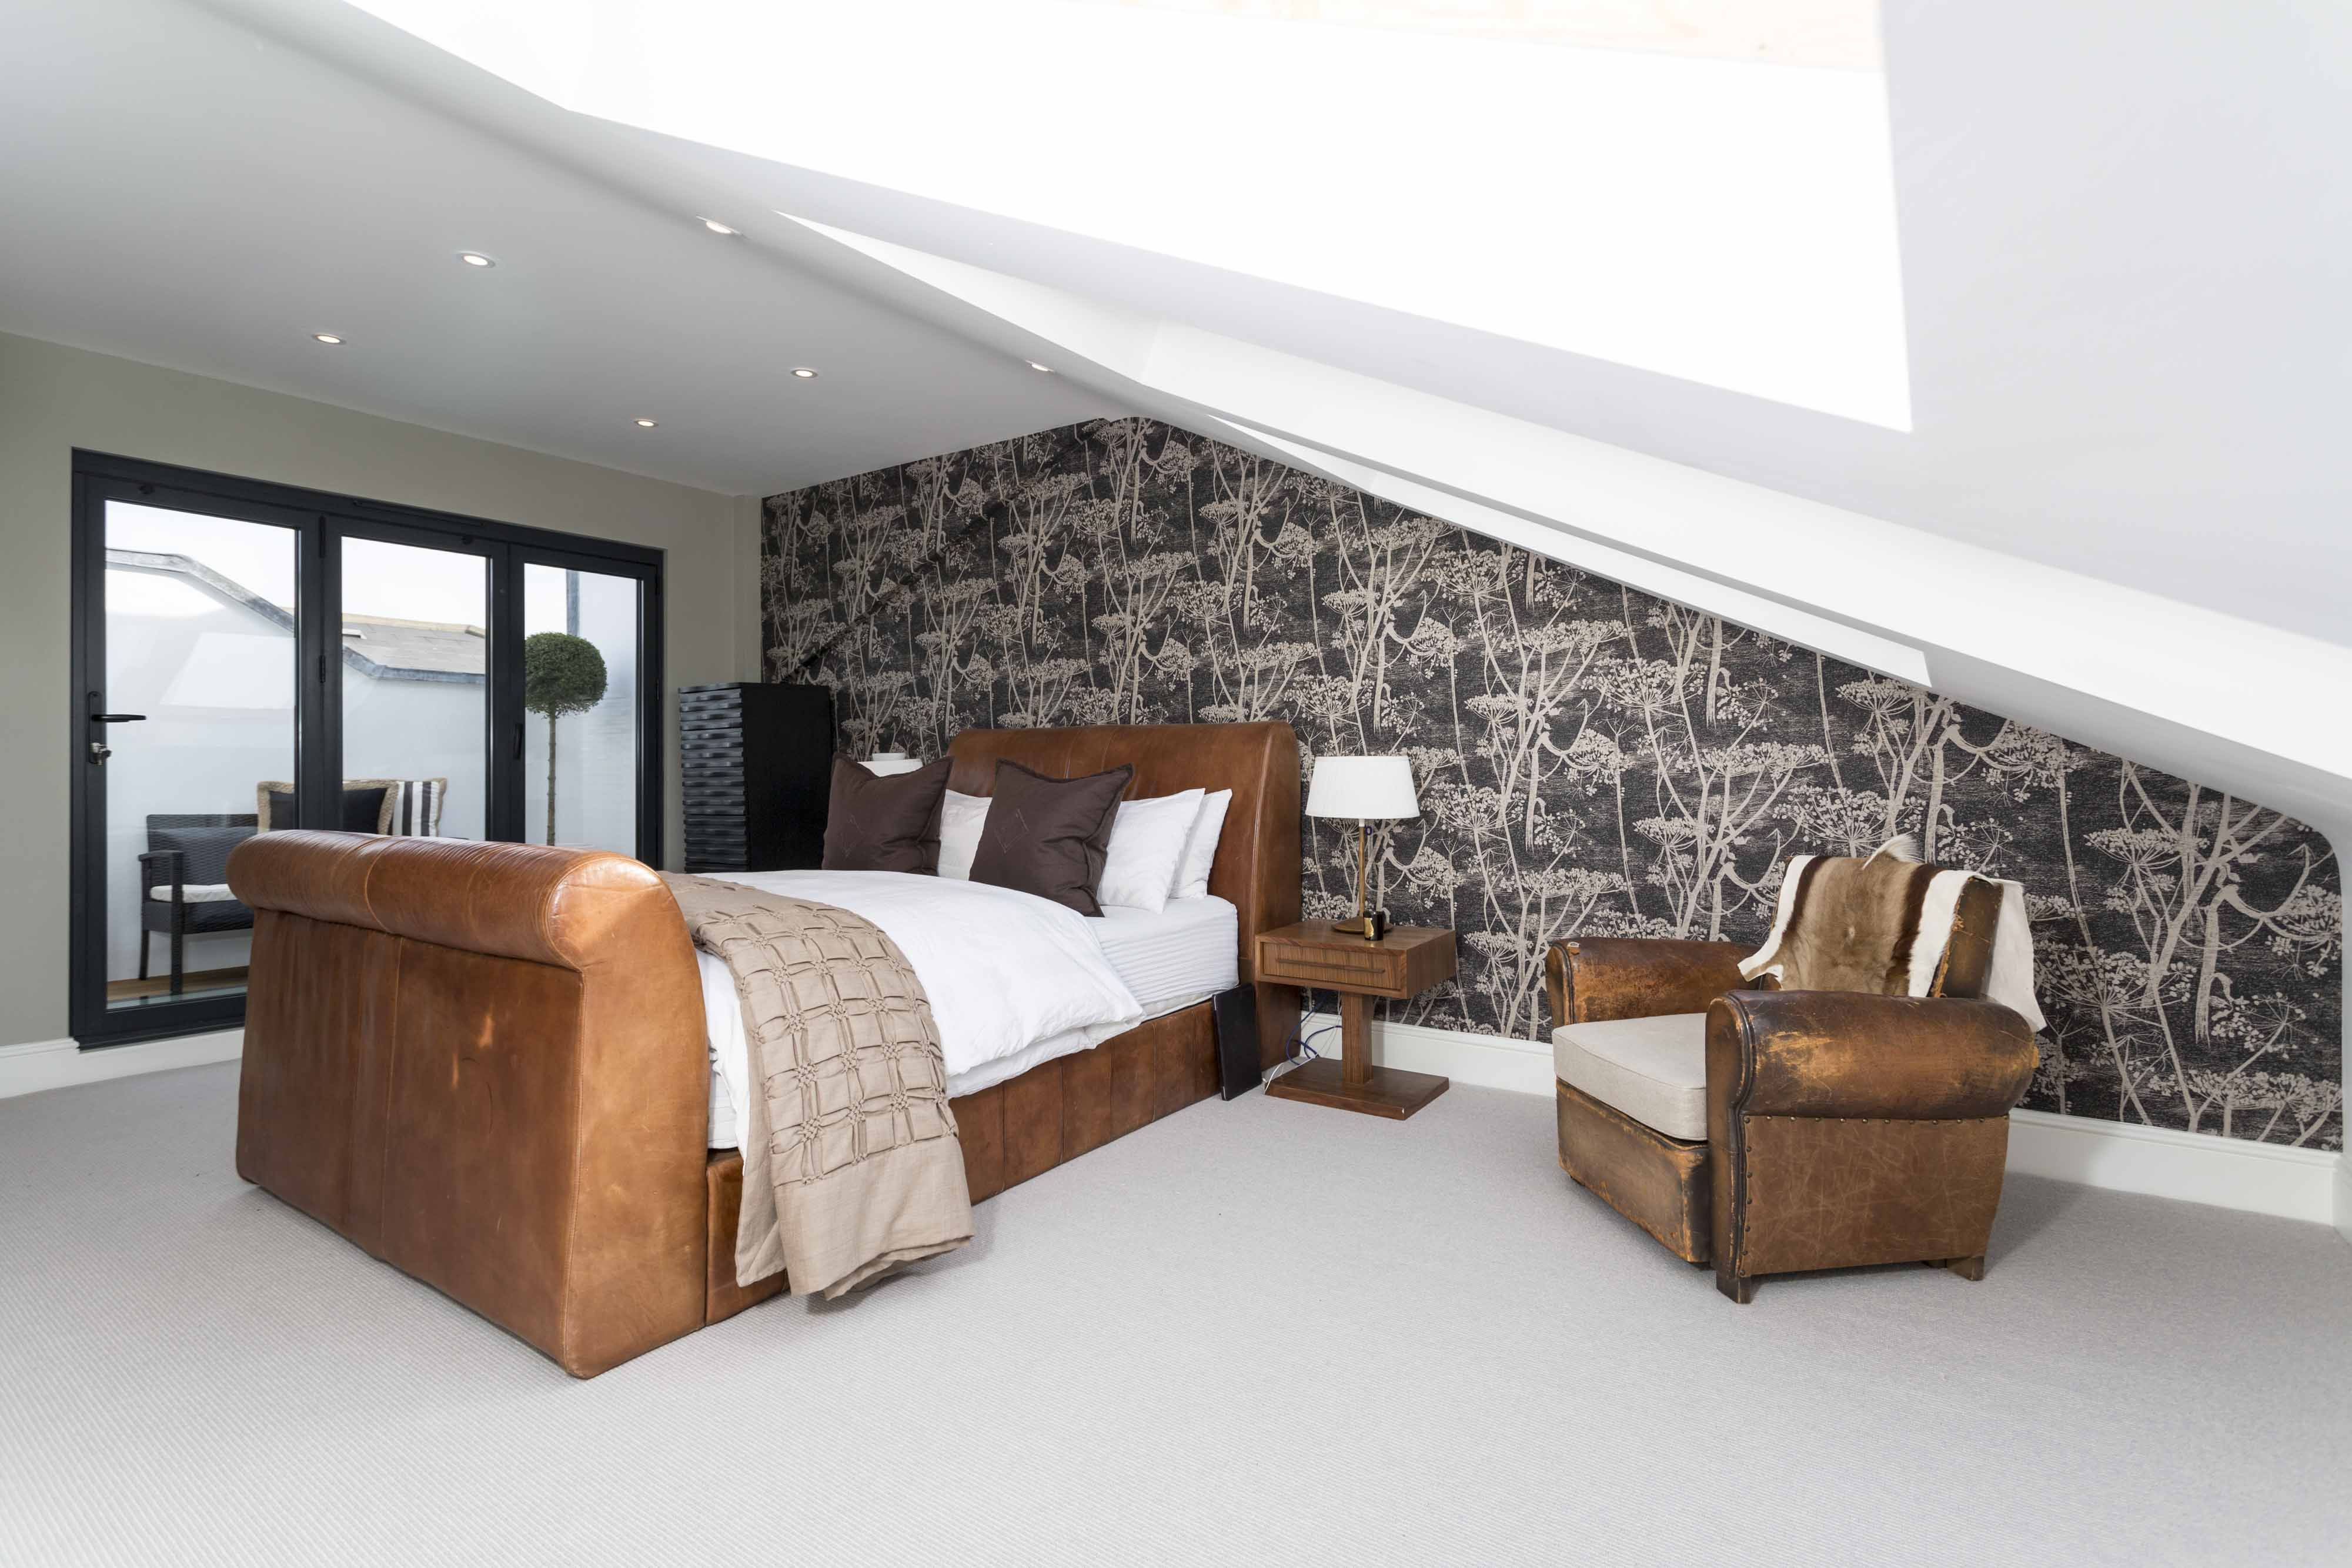 Superb Stunning Loft Conversion With Integrated Roof Terrace To A Penthouse  Apartment In London. Built By